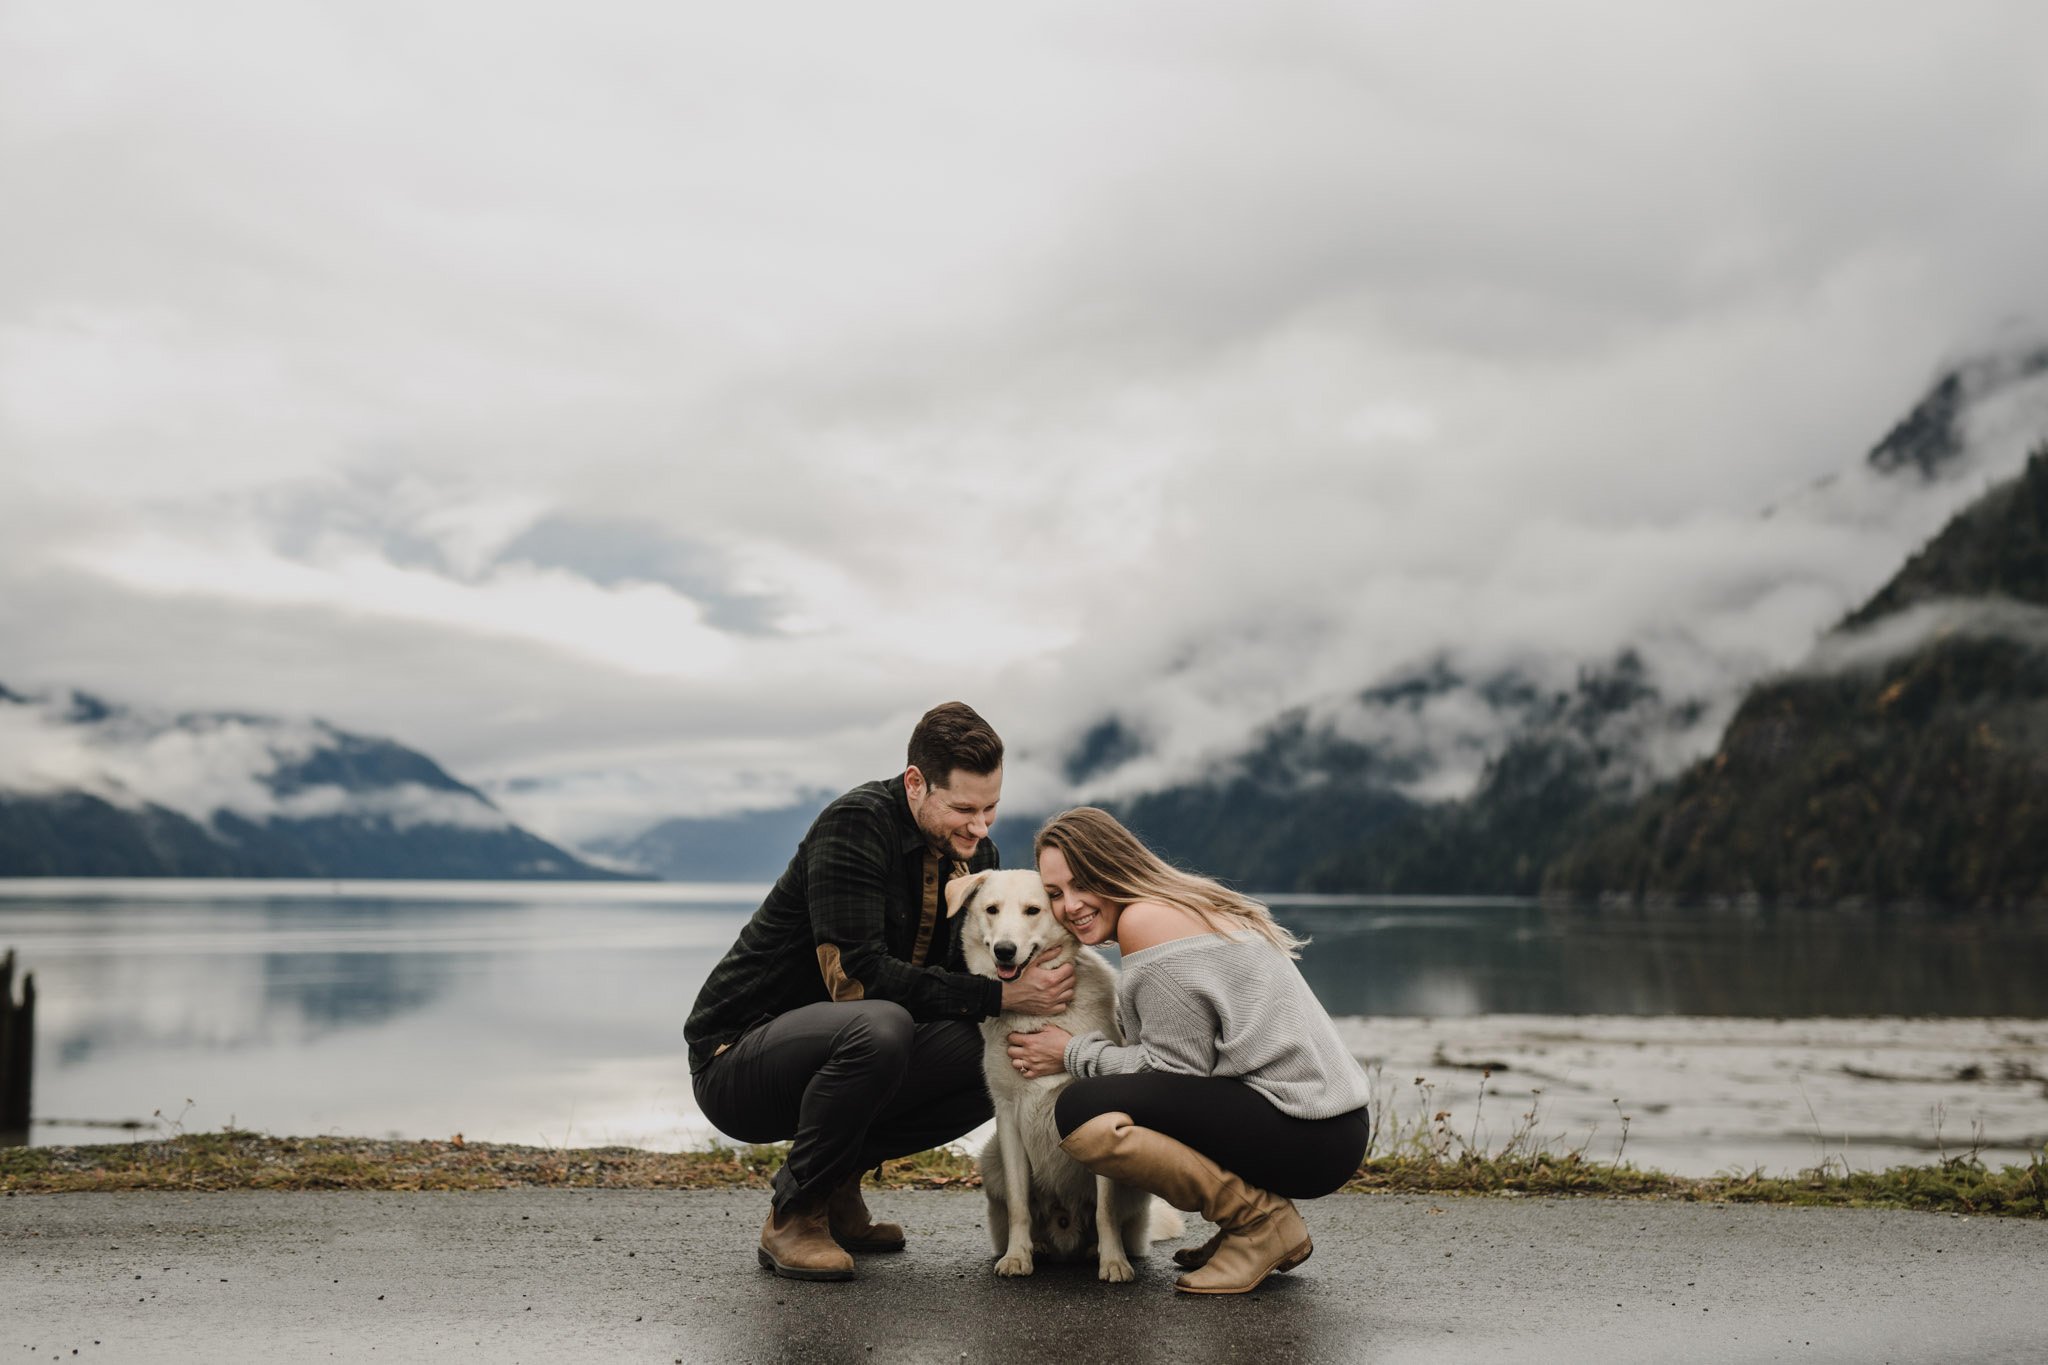 BC Mountain Top Engagement Photographer - doggy cuddles